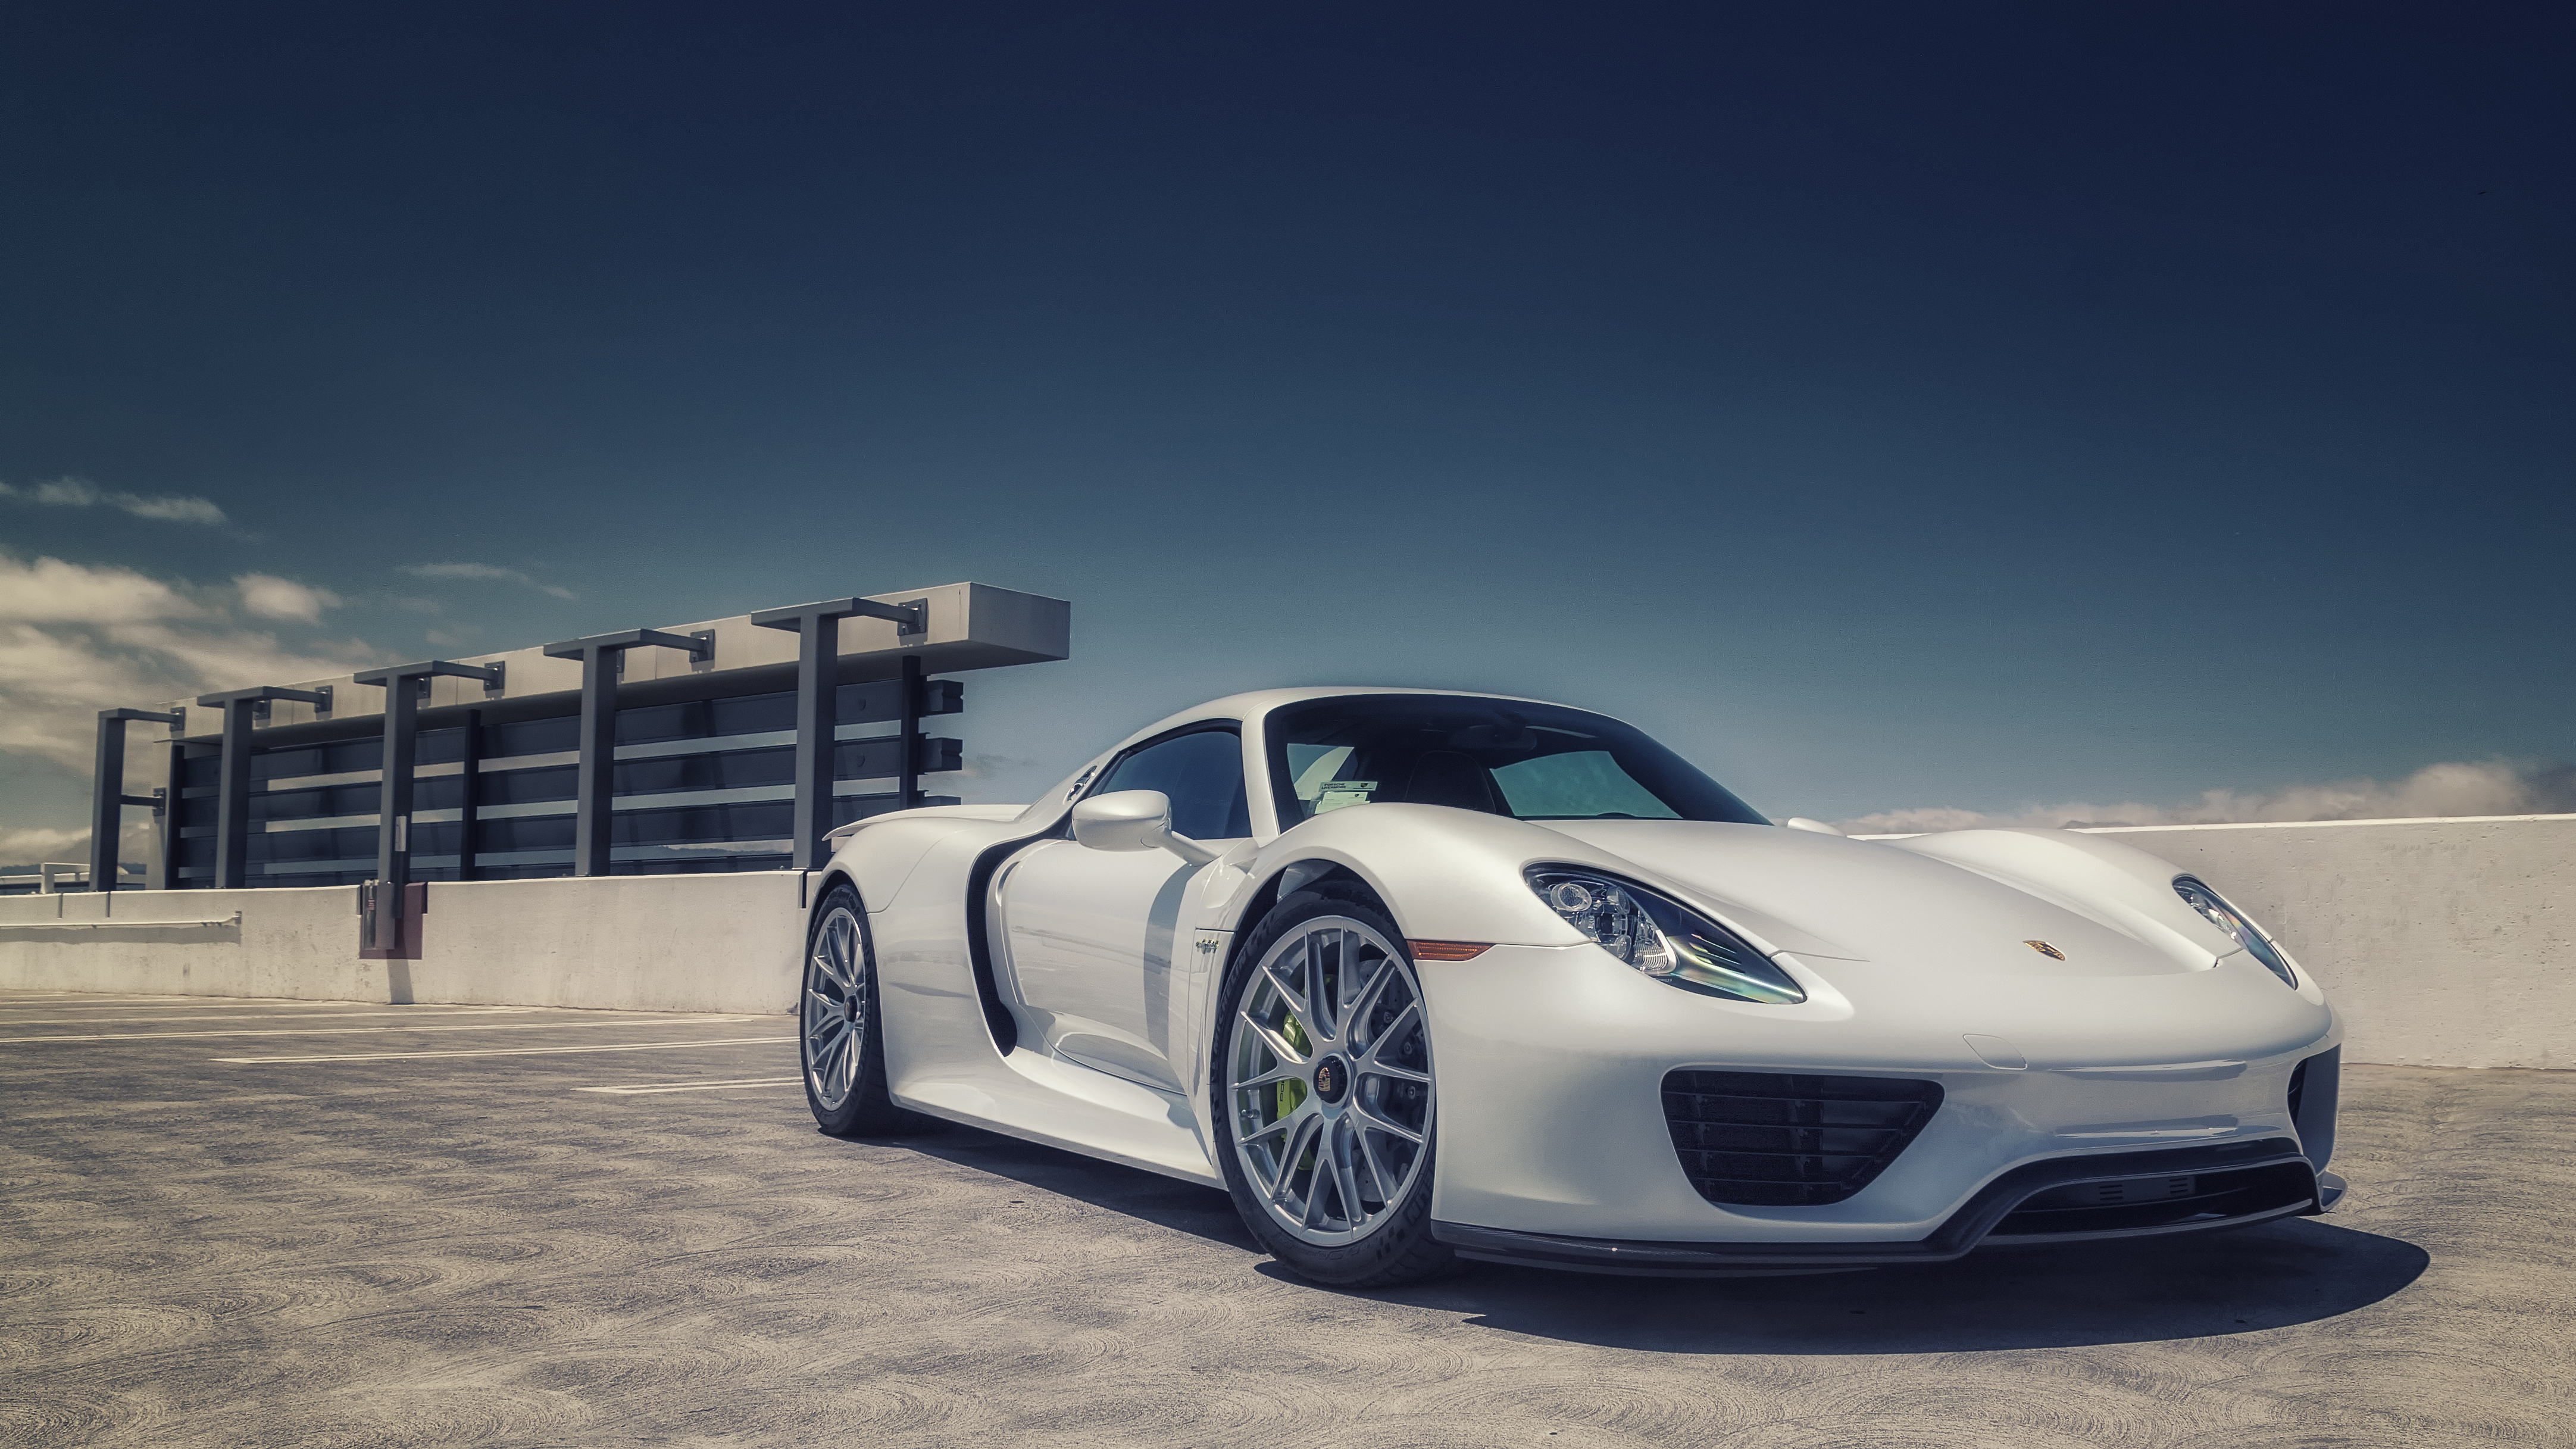 Porsche 918 Spyder Hd Cars 4k Wallpapers Images Backgrounds Photos And Pictures